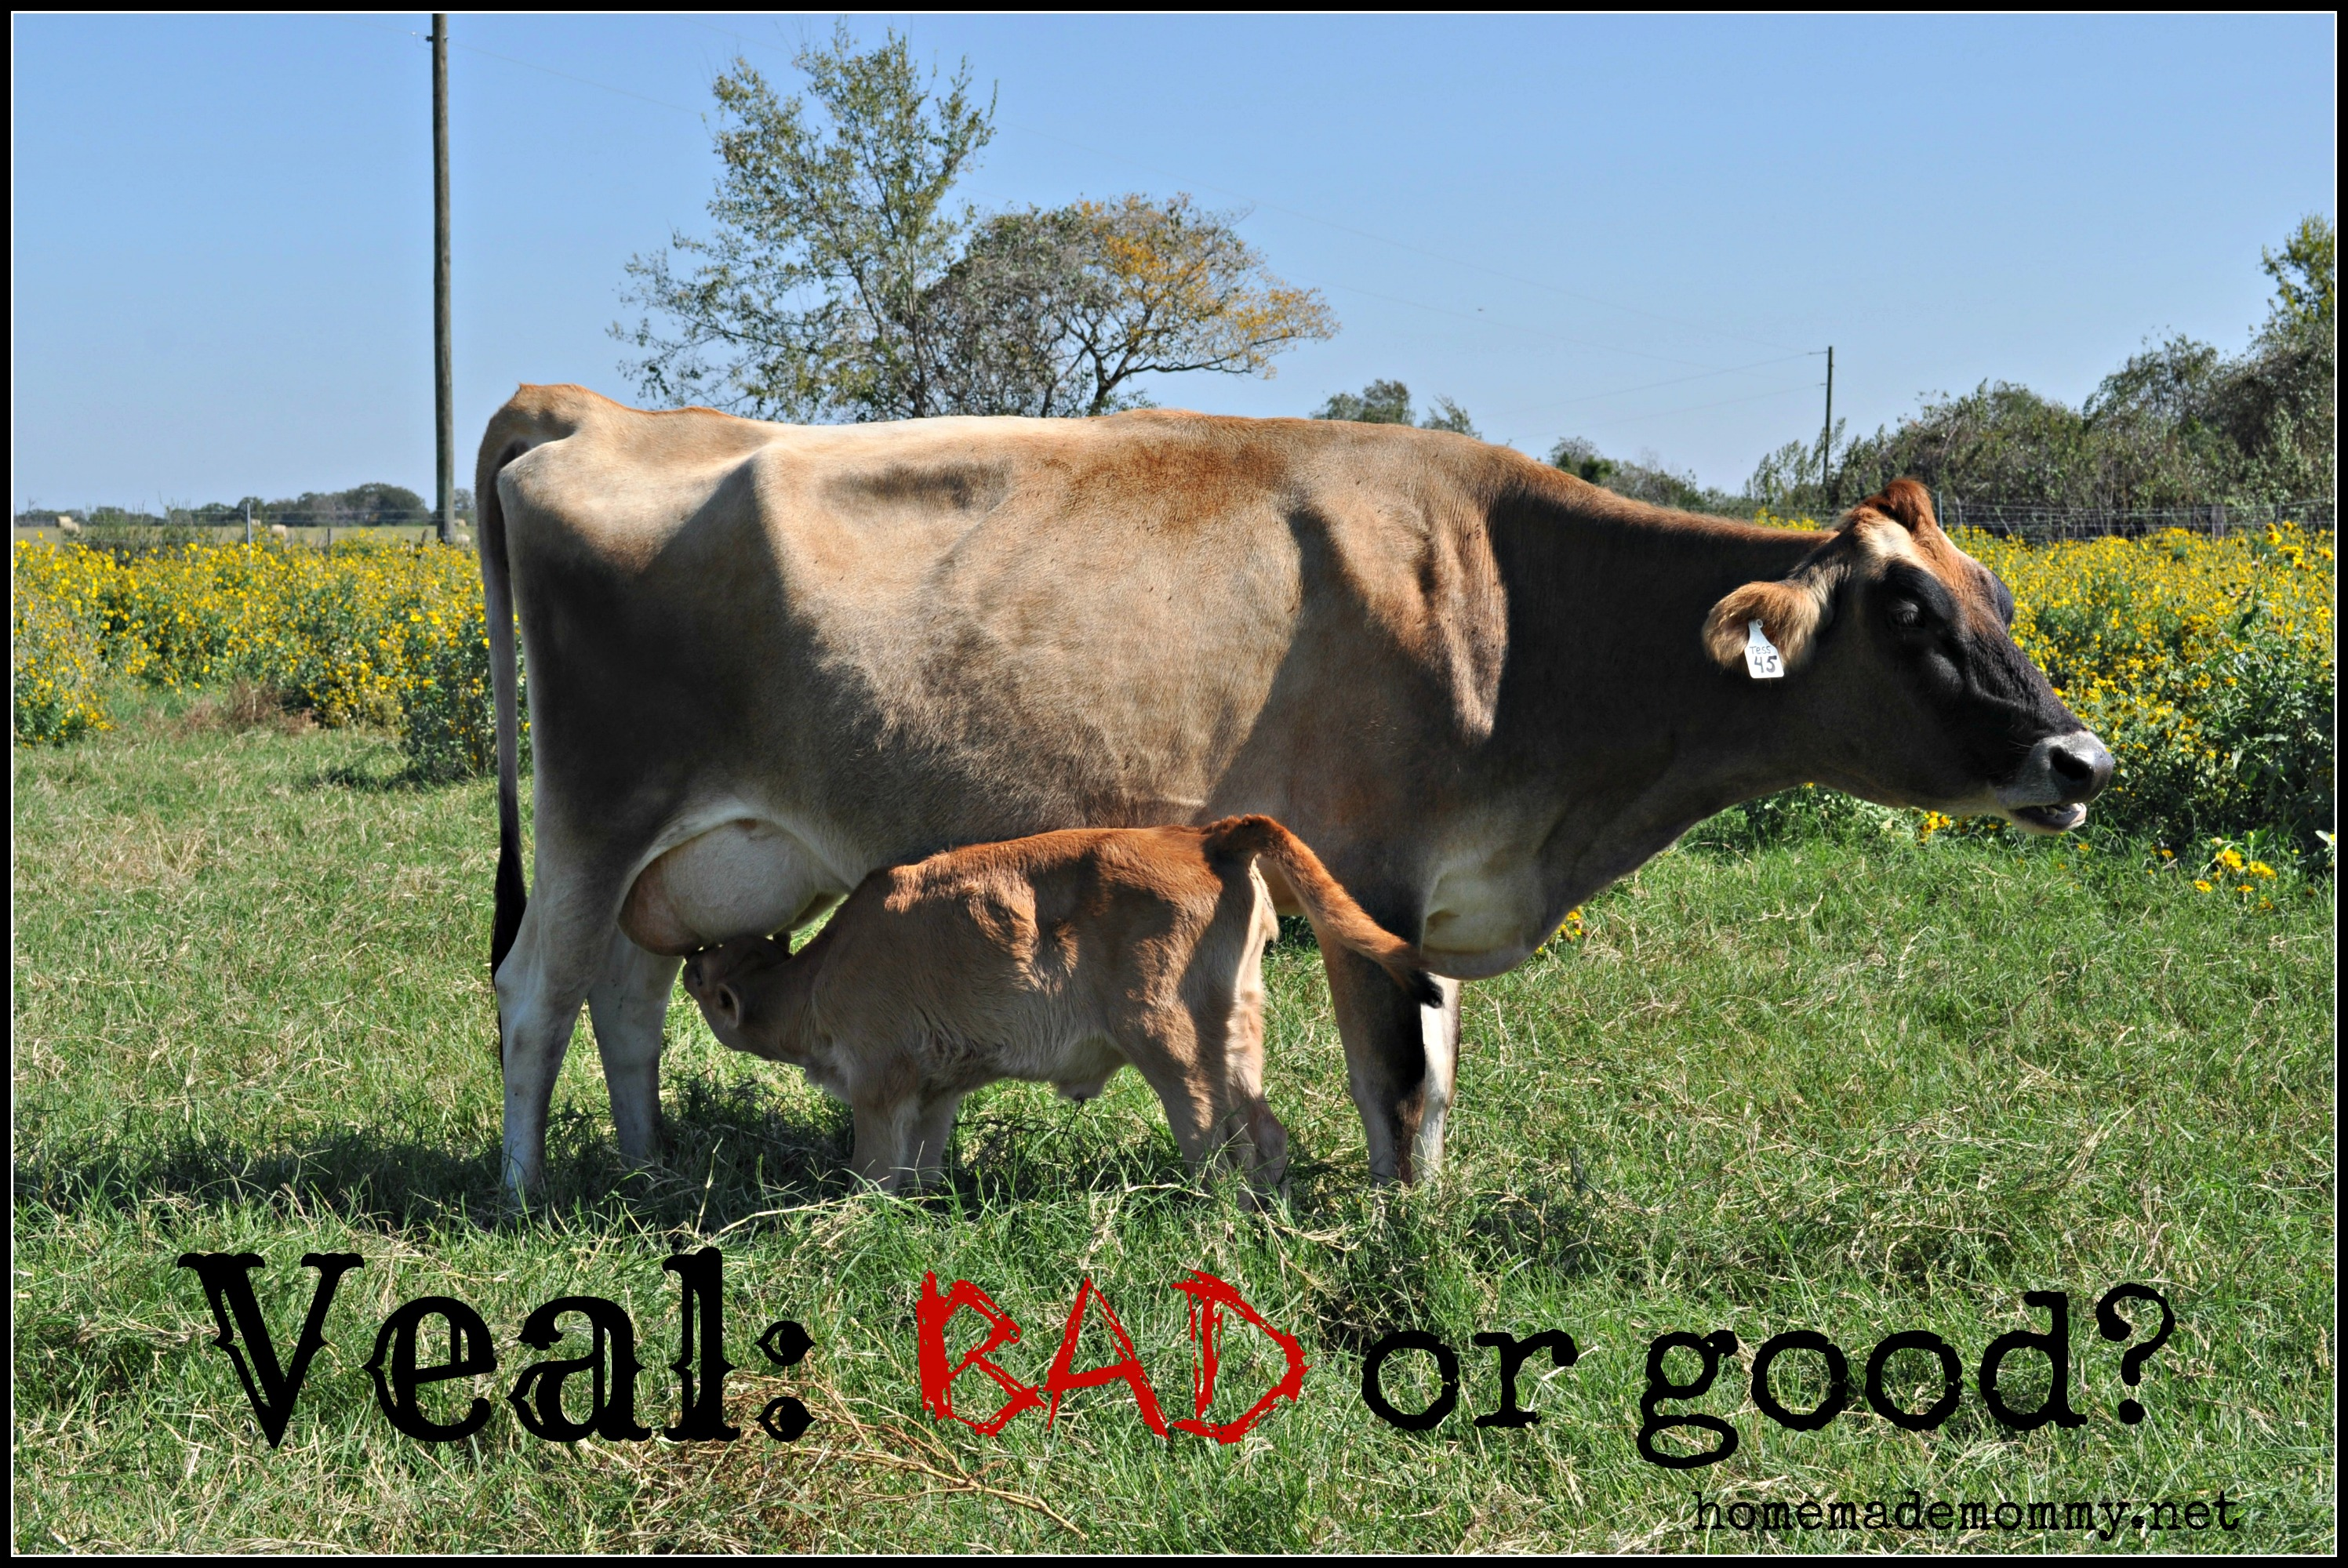 Veal Bad Or Good? via Homemade Mommy